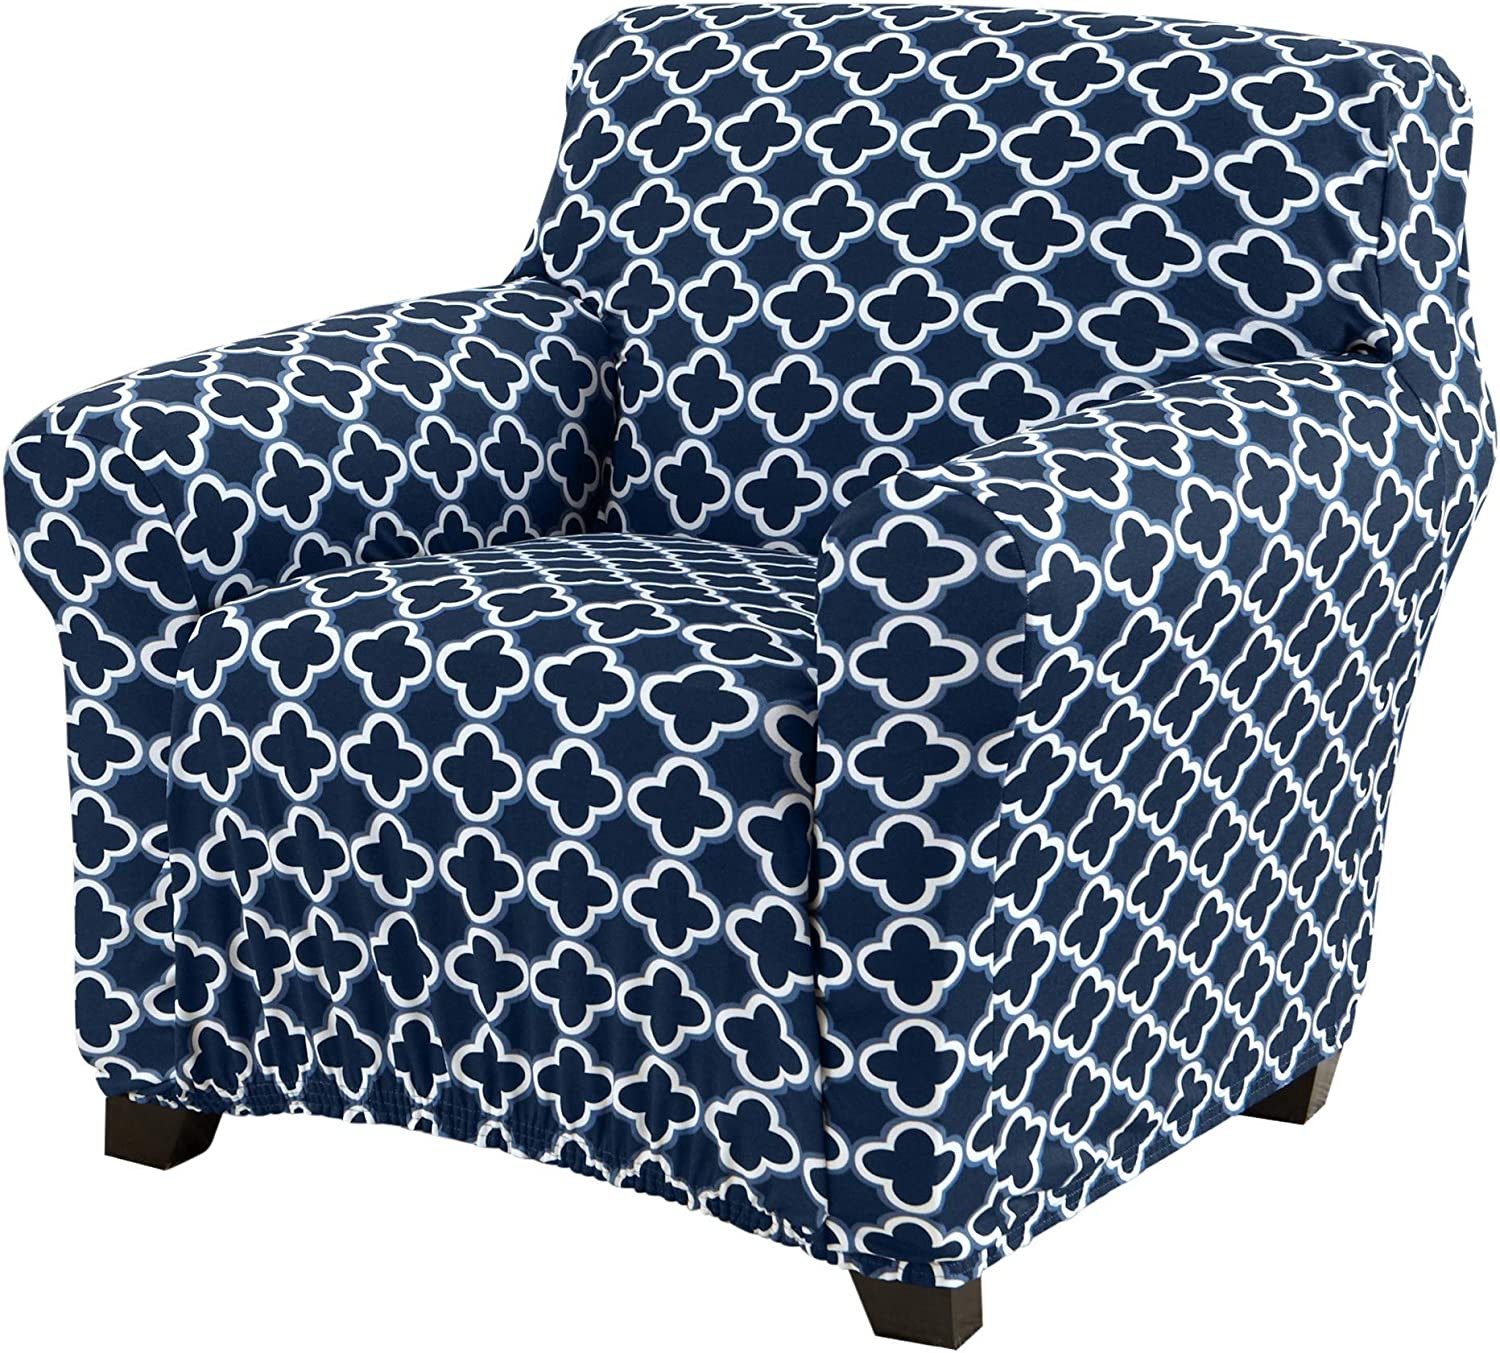 Printed Twill Arm Chair Slipcover. One Piece Stretch Chair Cover. Strapless Arm Chair Cover for Living Room. Fallon Collection Slipcover. (Chair, Navy)